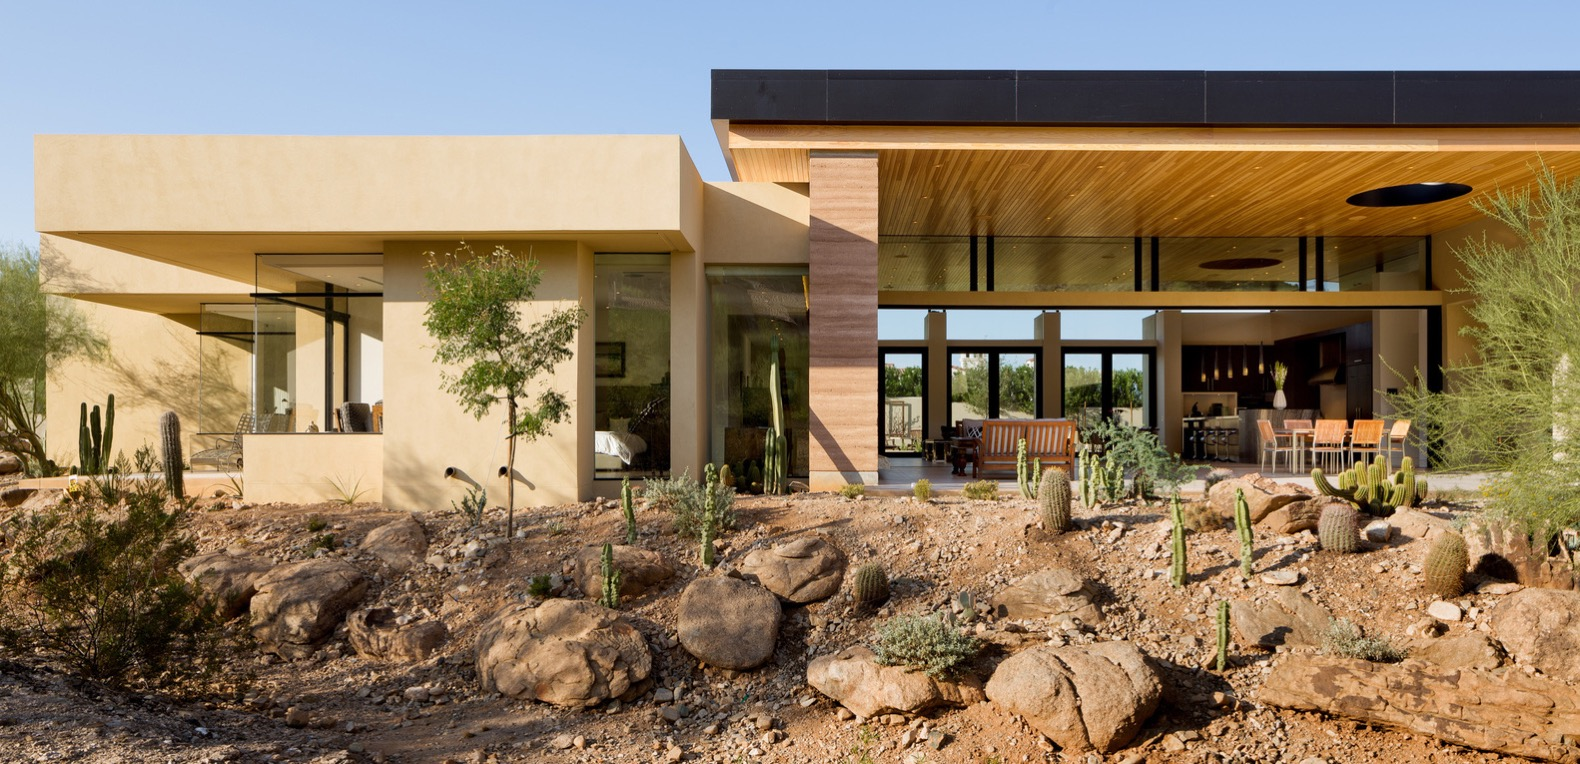 Rammed earth walls tie this modern home to the Arizona desert landscape